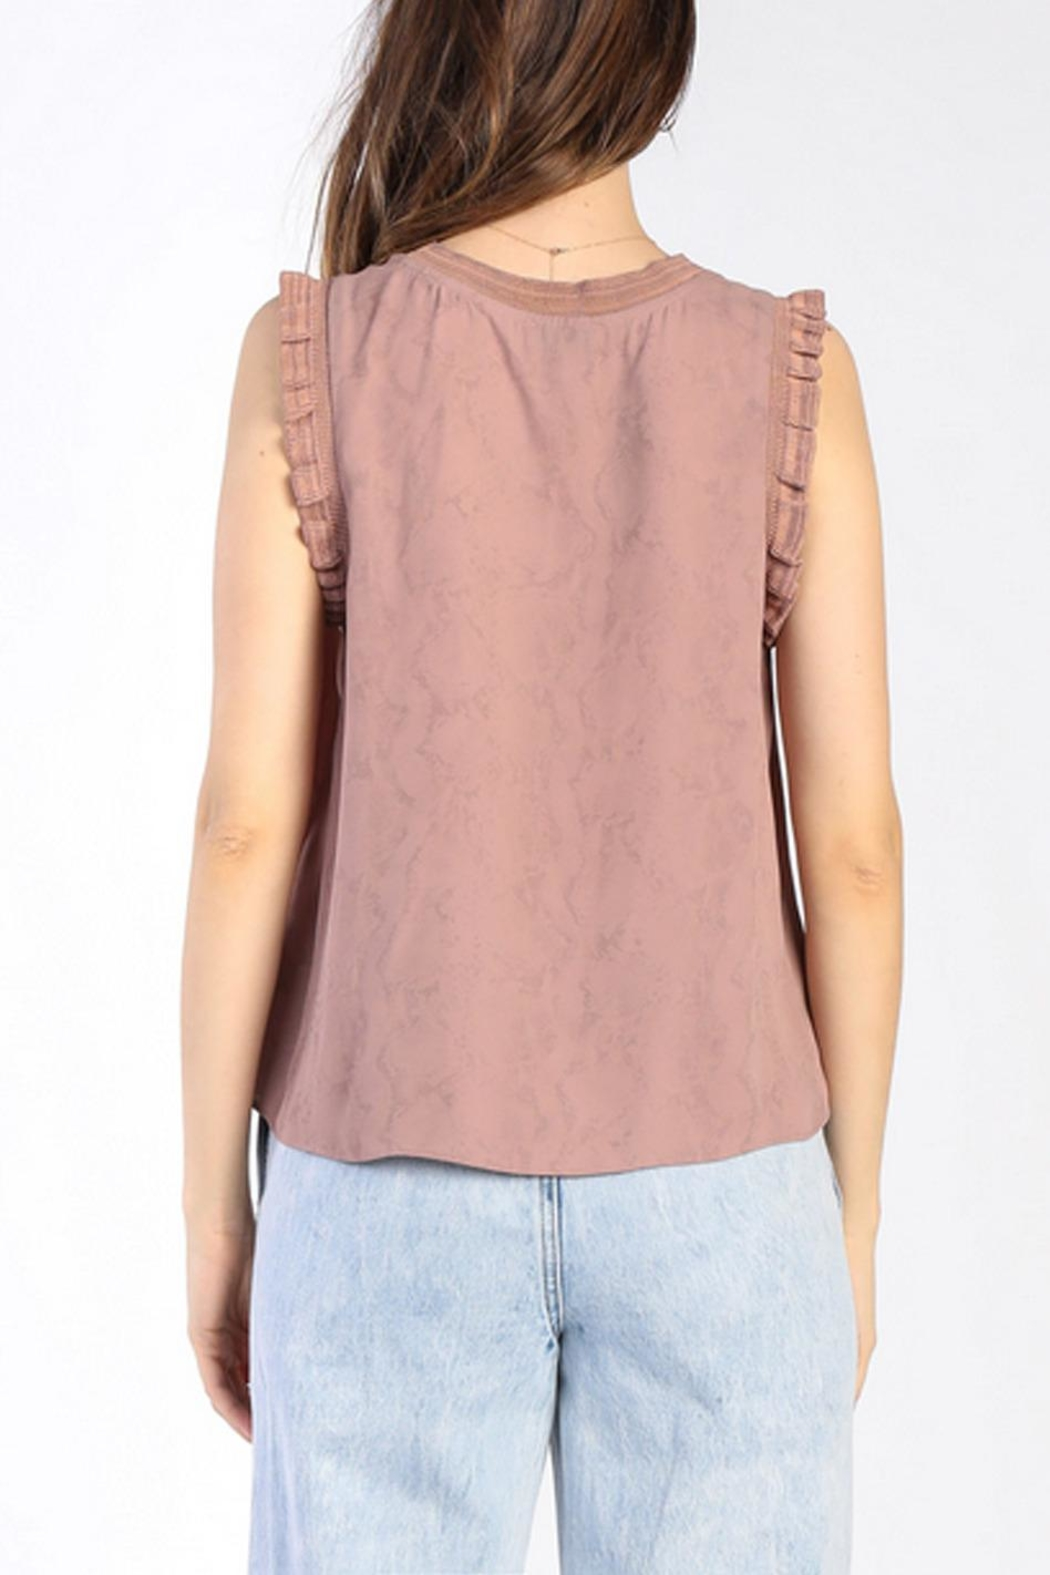 Current Air Ruffle Knit Tank - Back Cropped Image